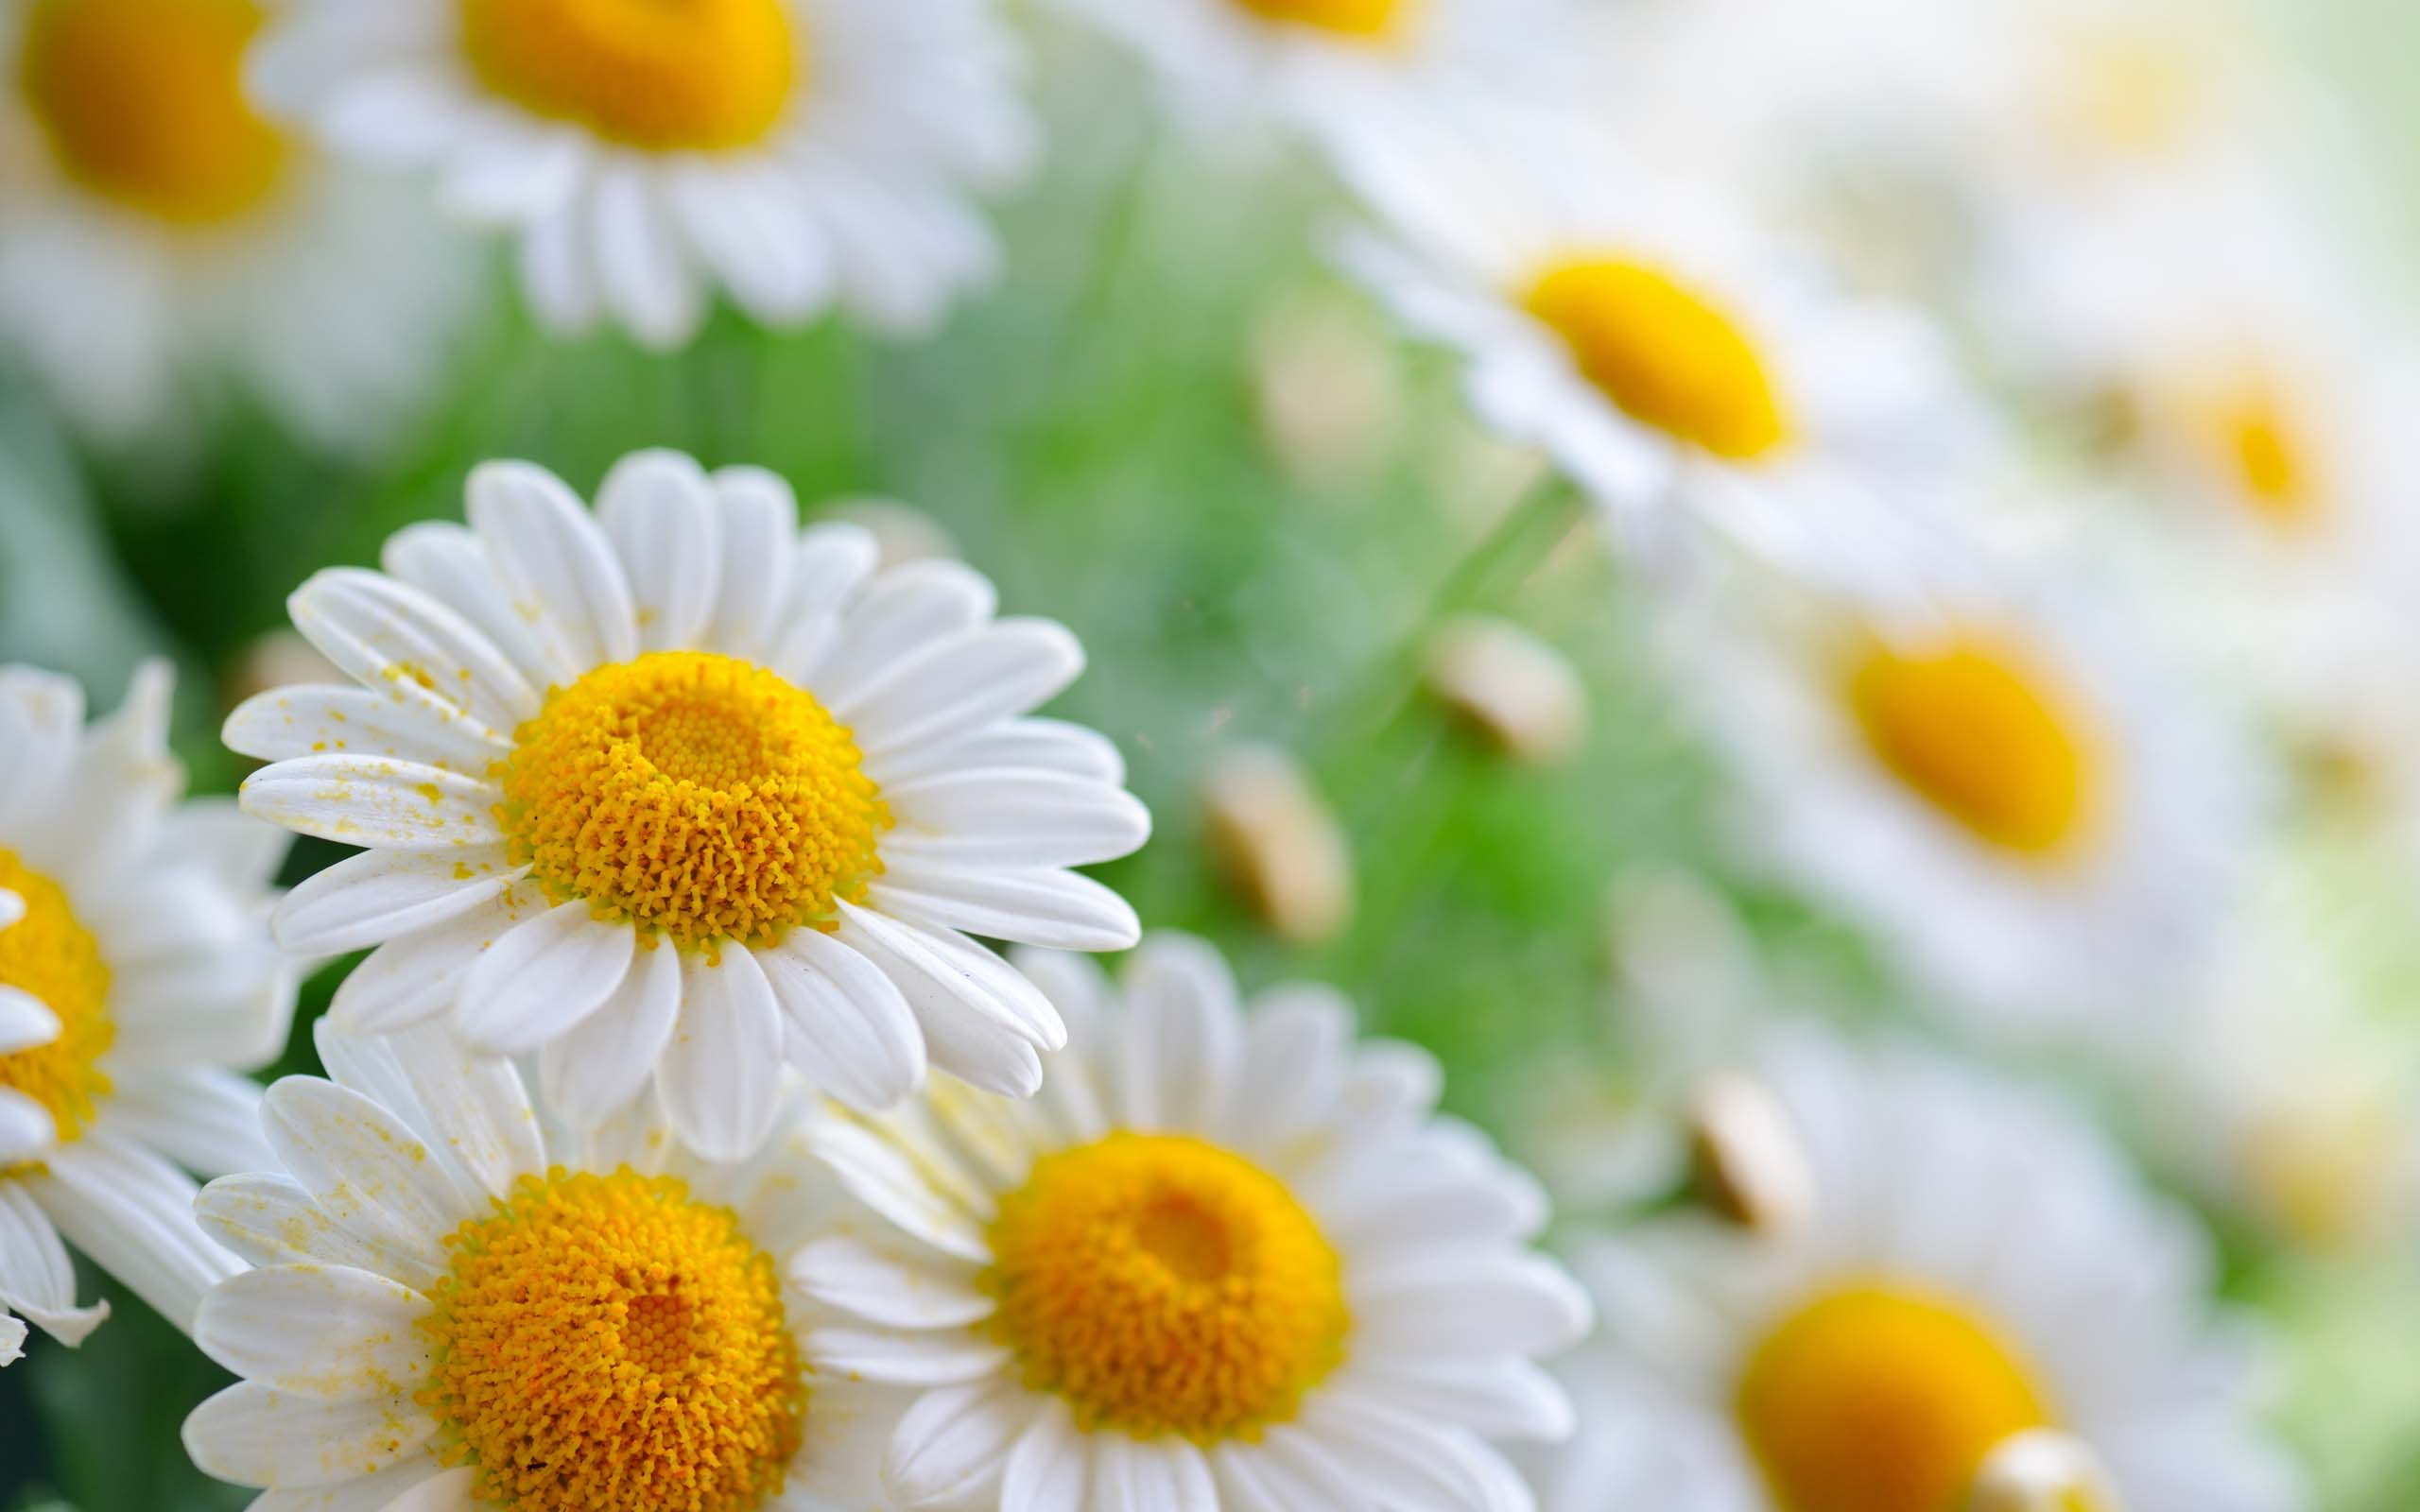 Group Pics Of Daisy Flowers Pics Download